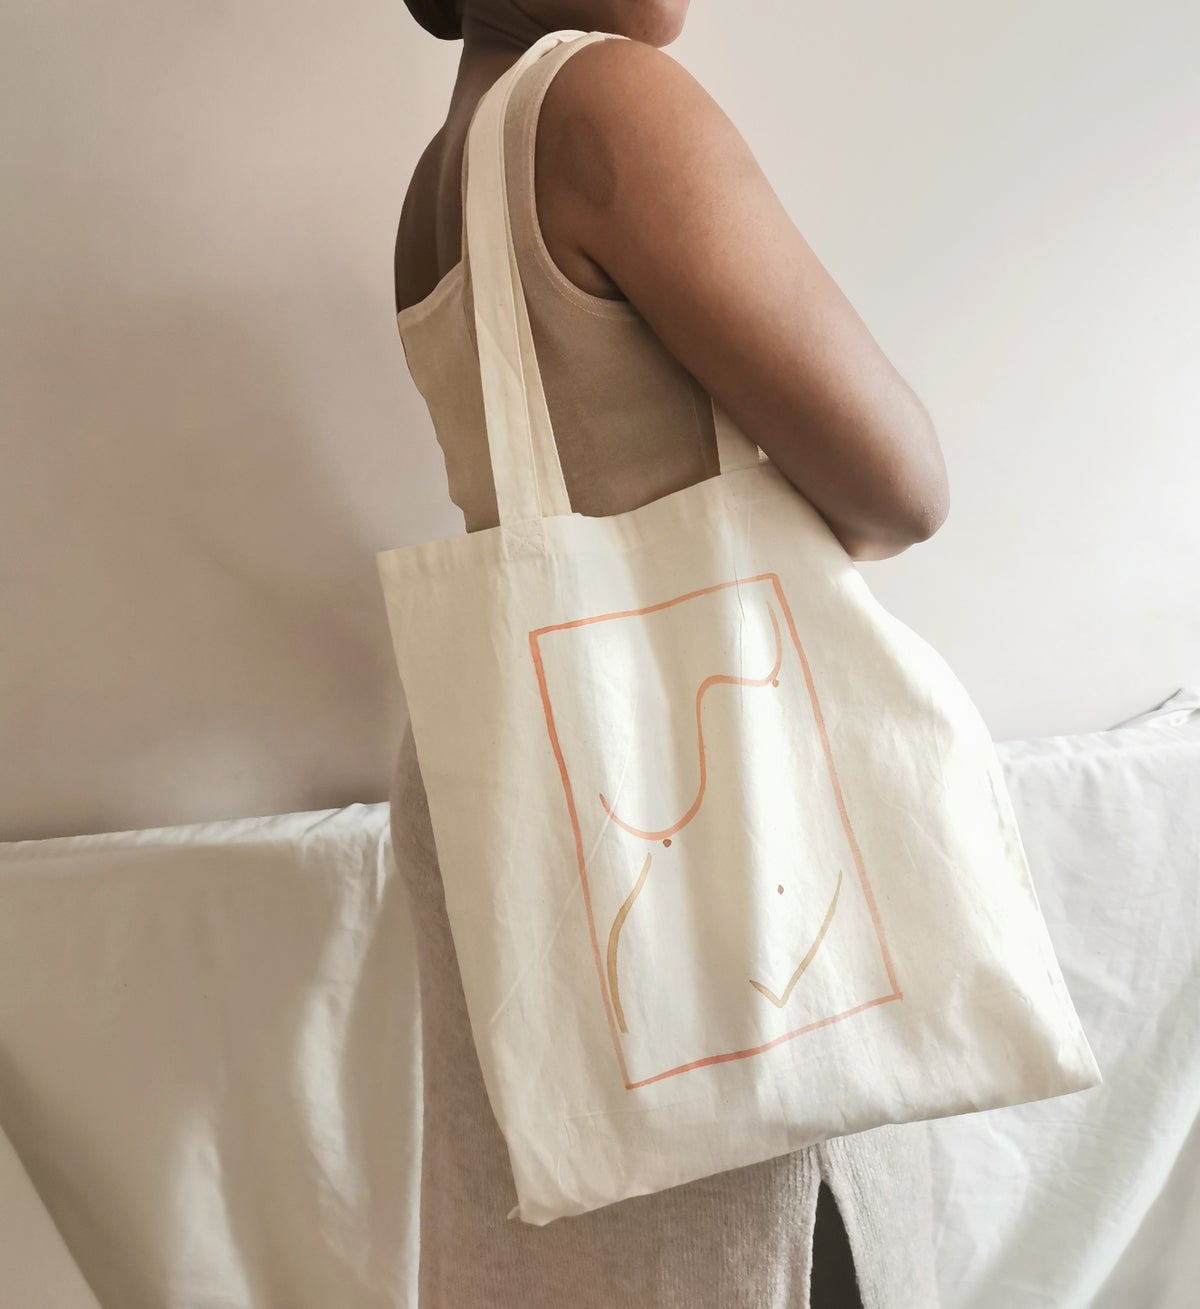 Image of female embodied tote